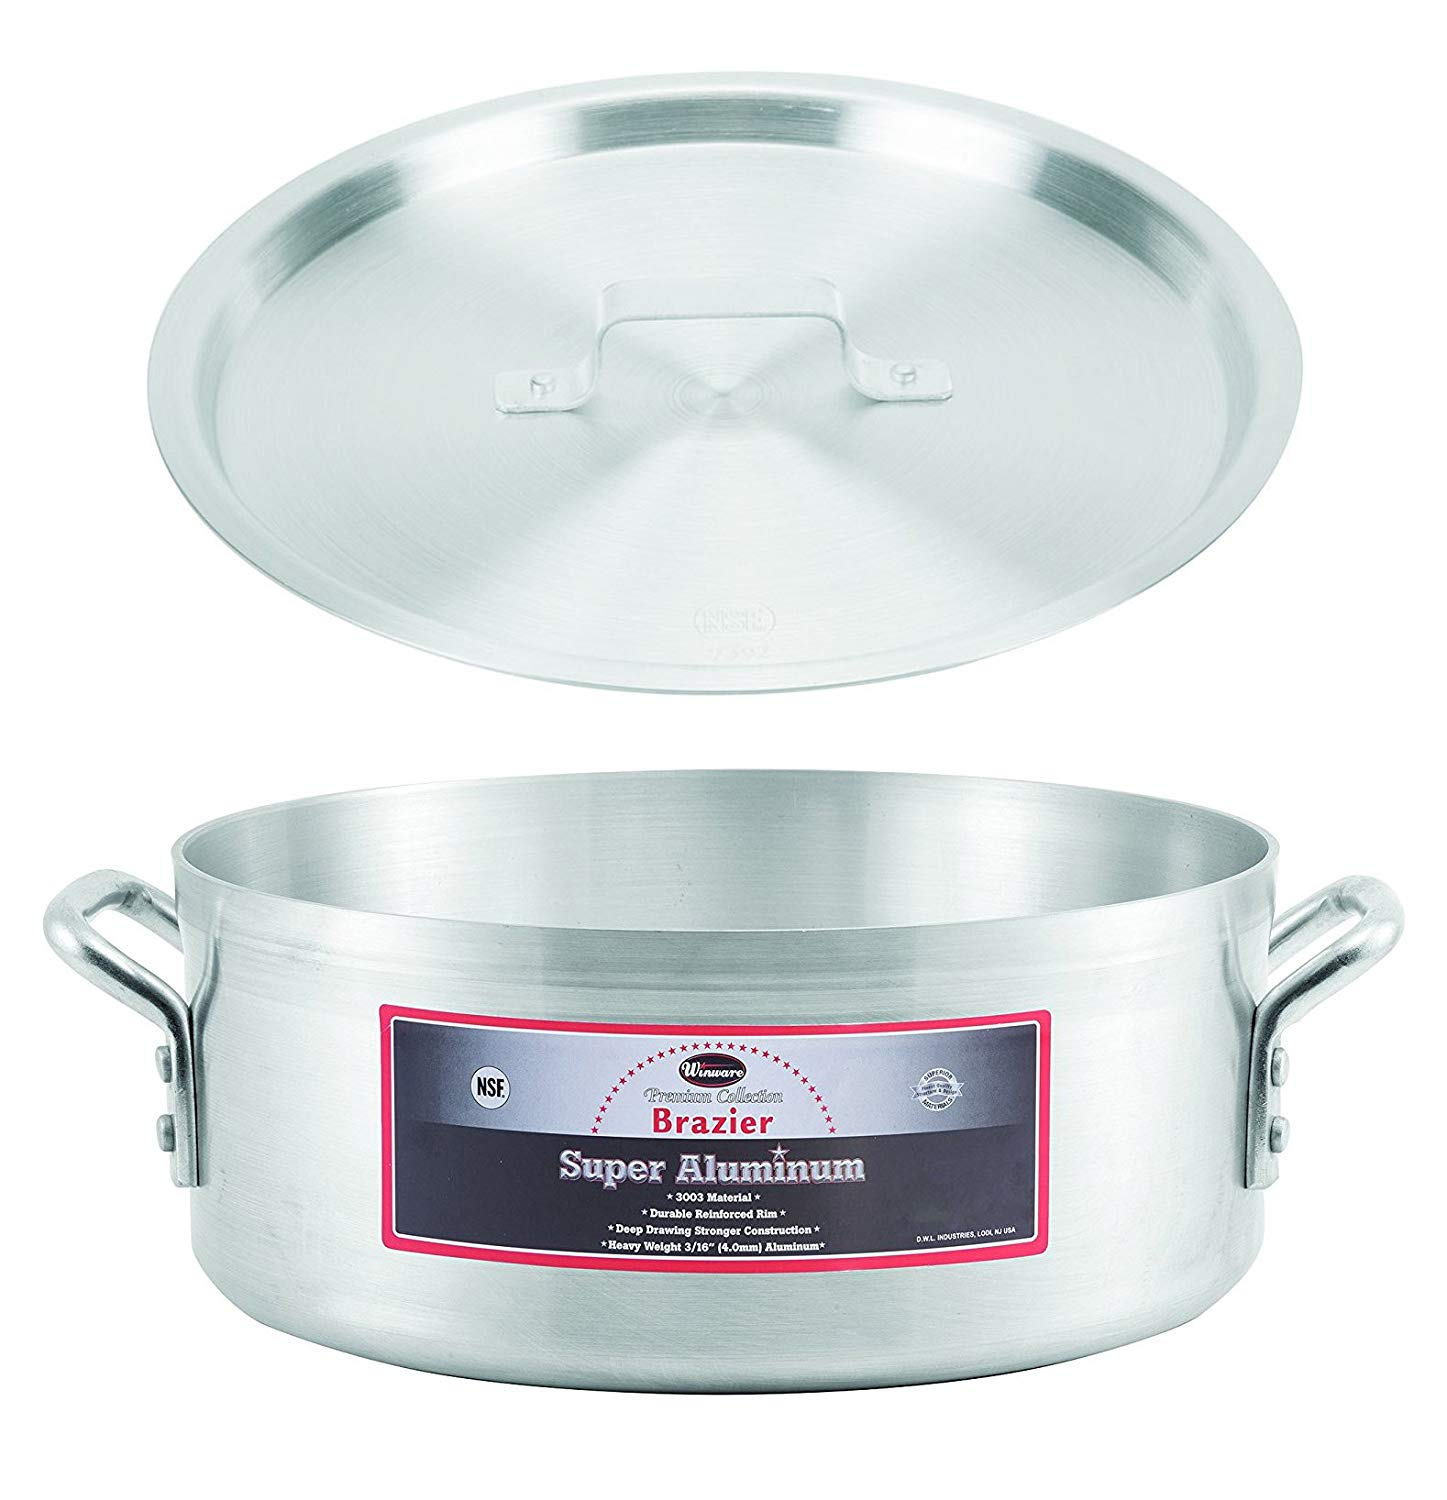 """Winco AXBZ-15, 15-Quart 14-3/8"""" x 5-3/4"""" Super Aluminum Brazier Pan with Cover, Heavy-Duty Commercial Grade Braiser Pan with Lid, NSF"""